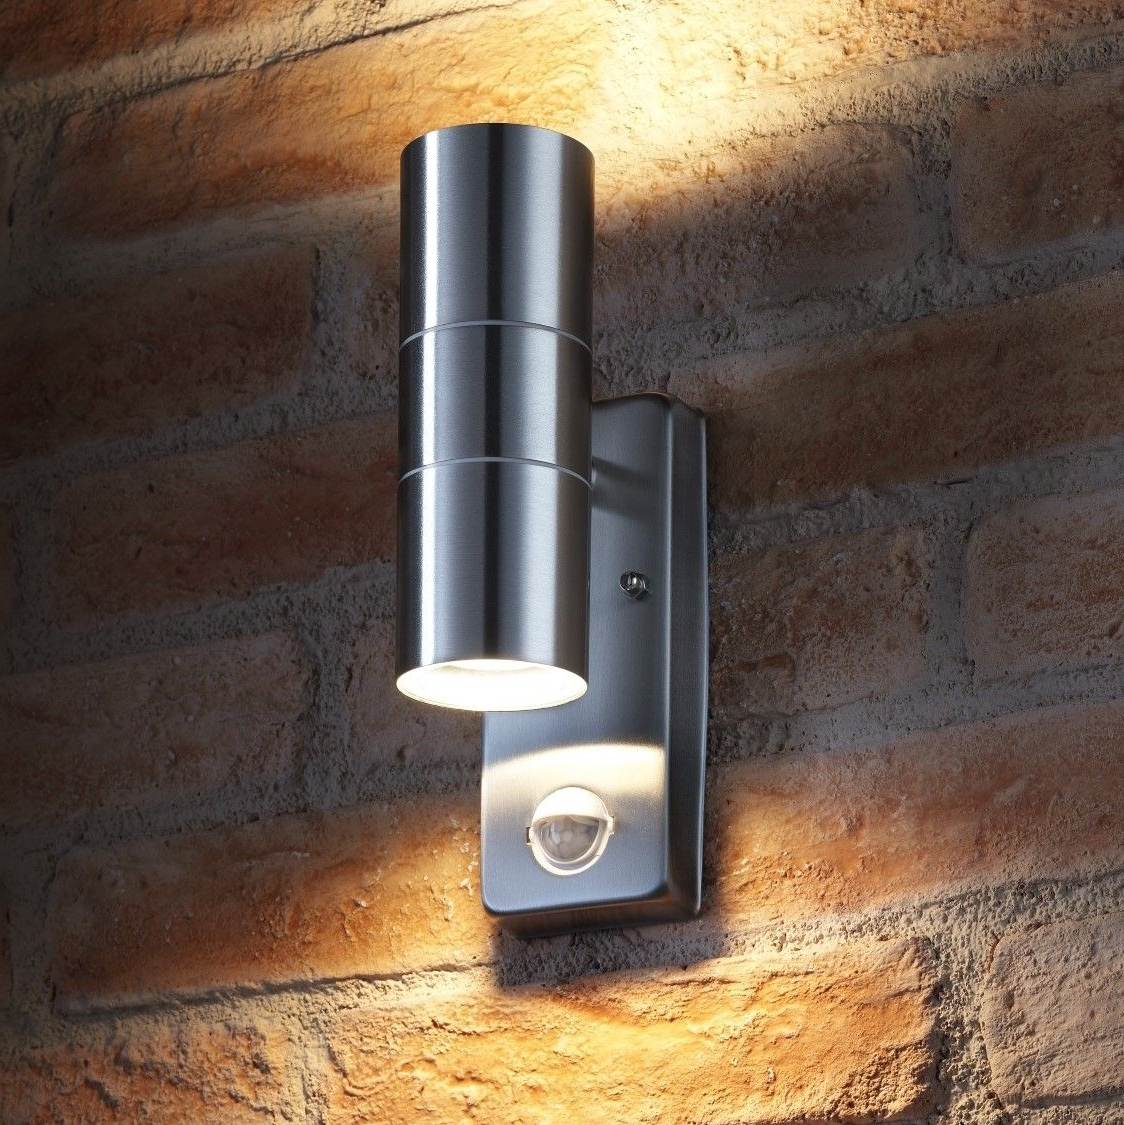 Auraglow Pir Motion Sensor Stainless Steel Up & Down Outdoor Wall For Most Up To Date Outdoor Led Wall Lights With Pir (View 3 of 20)